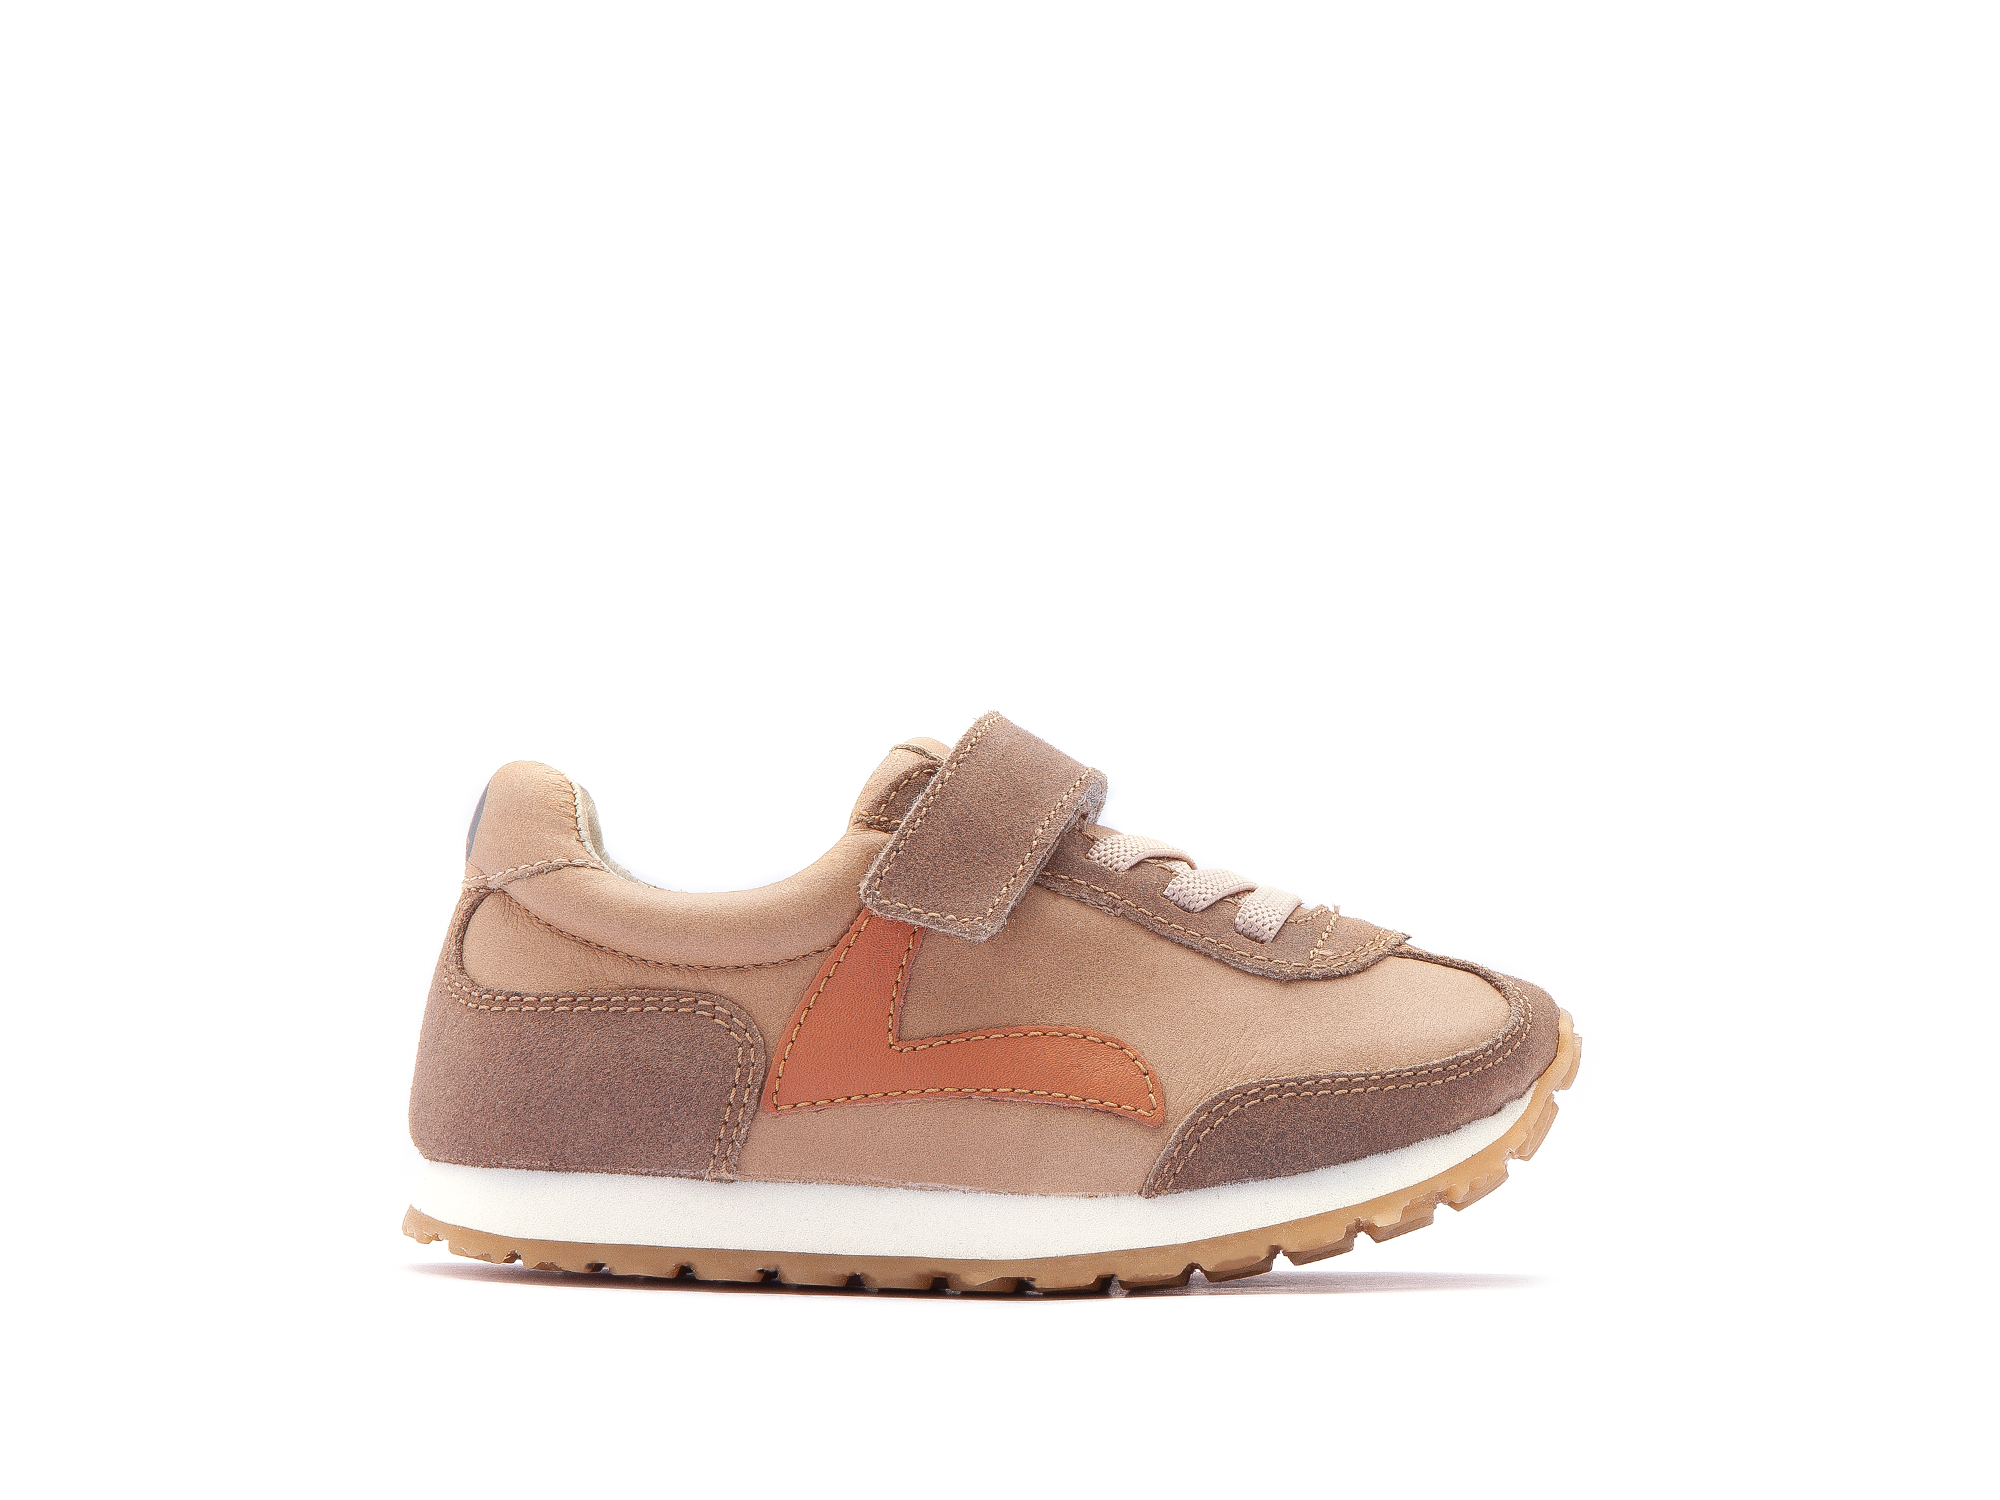 Tênis Little Start Sand/ Dry Tan Suede Toddler 2 à 4 anos - 1